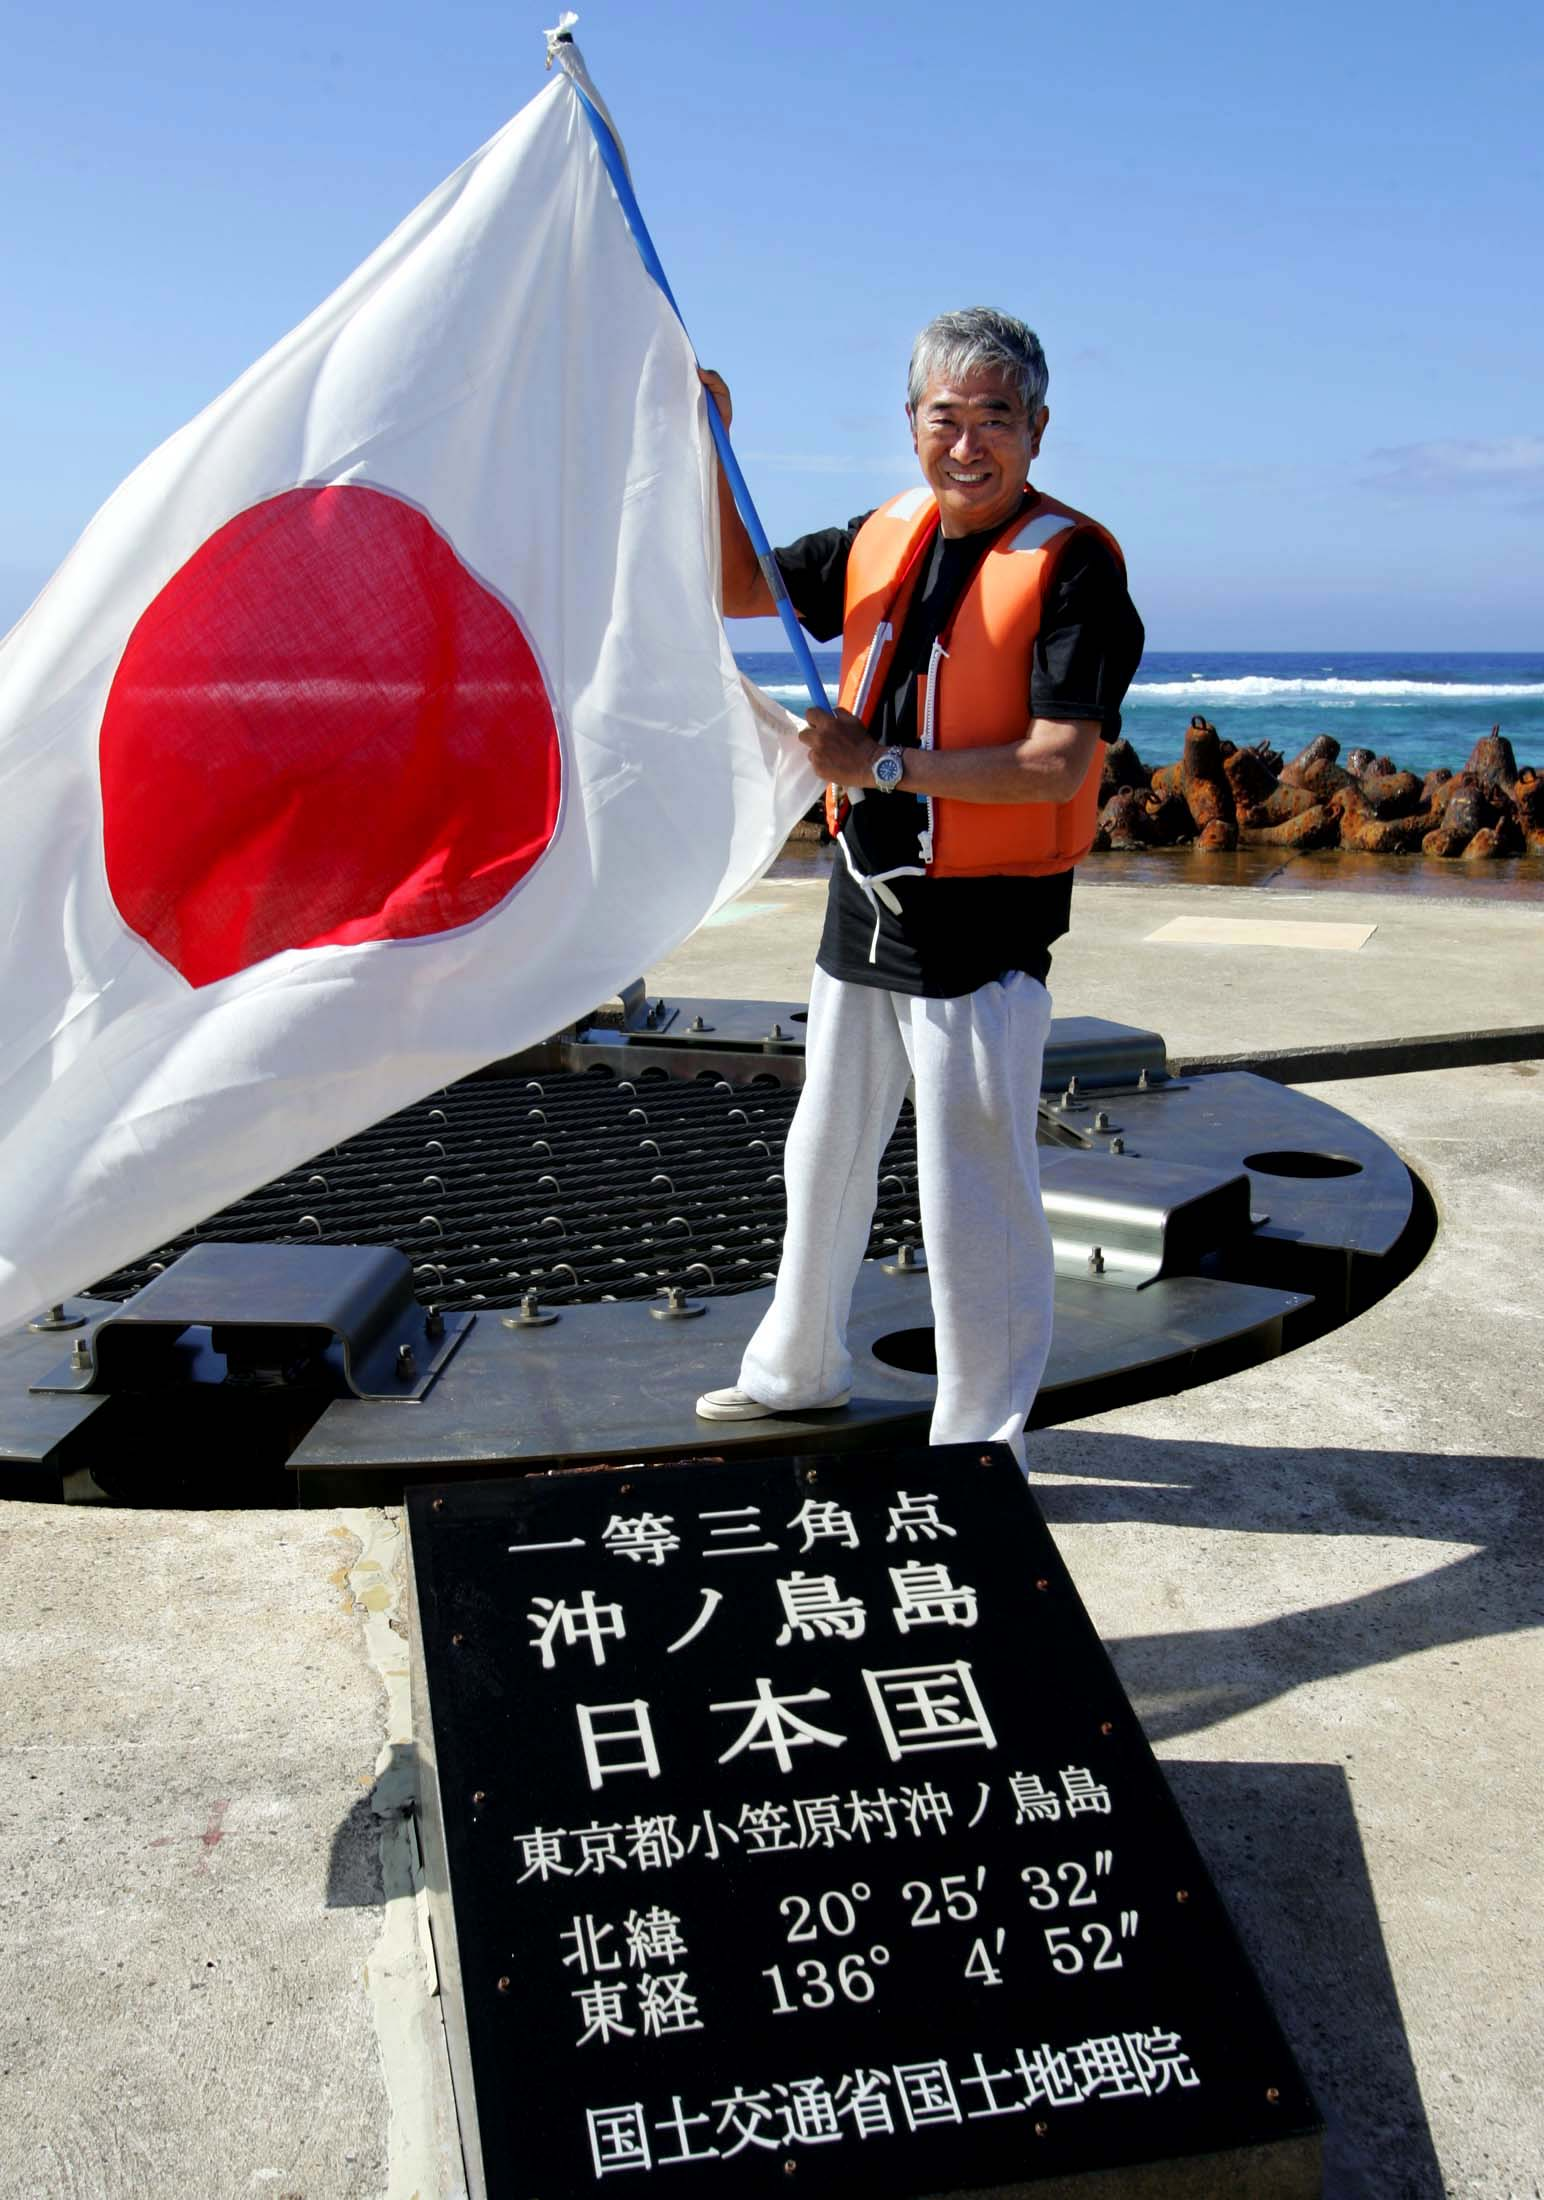 Tokyo Governor Shintaro Ishihara waves the Japanese national flag as he inspects Okinotorishima.